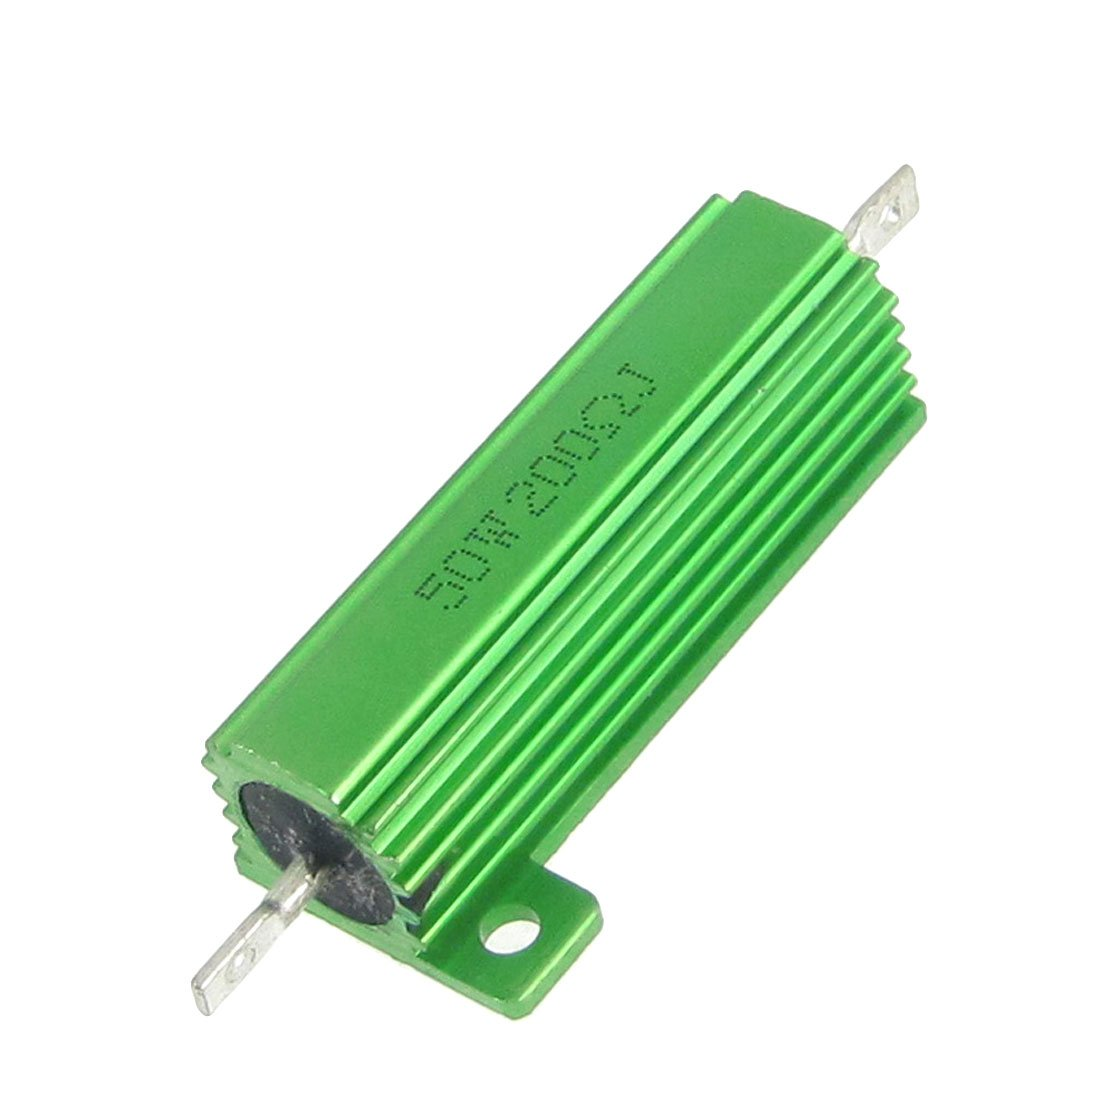 Set of 2 Pieces Sourcingmap a12051100ux0377 Green Aluminum Housed Wire Wound 50 Watt 5/% 200 Ohm Resistors Resistance 2 Pcs Multi-Colour